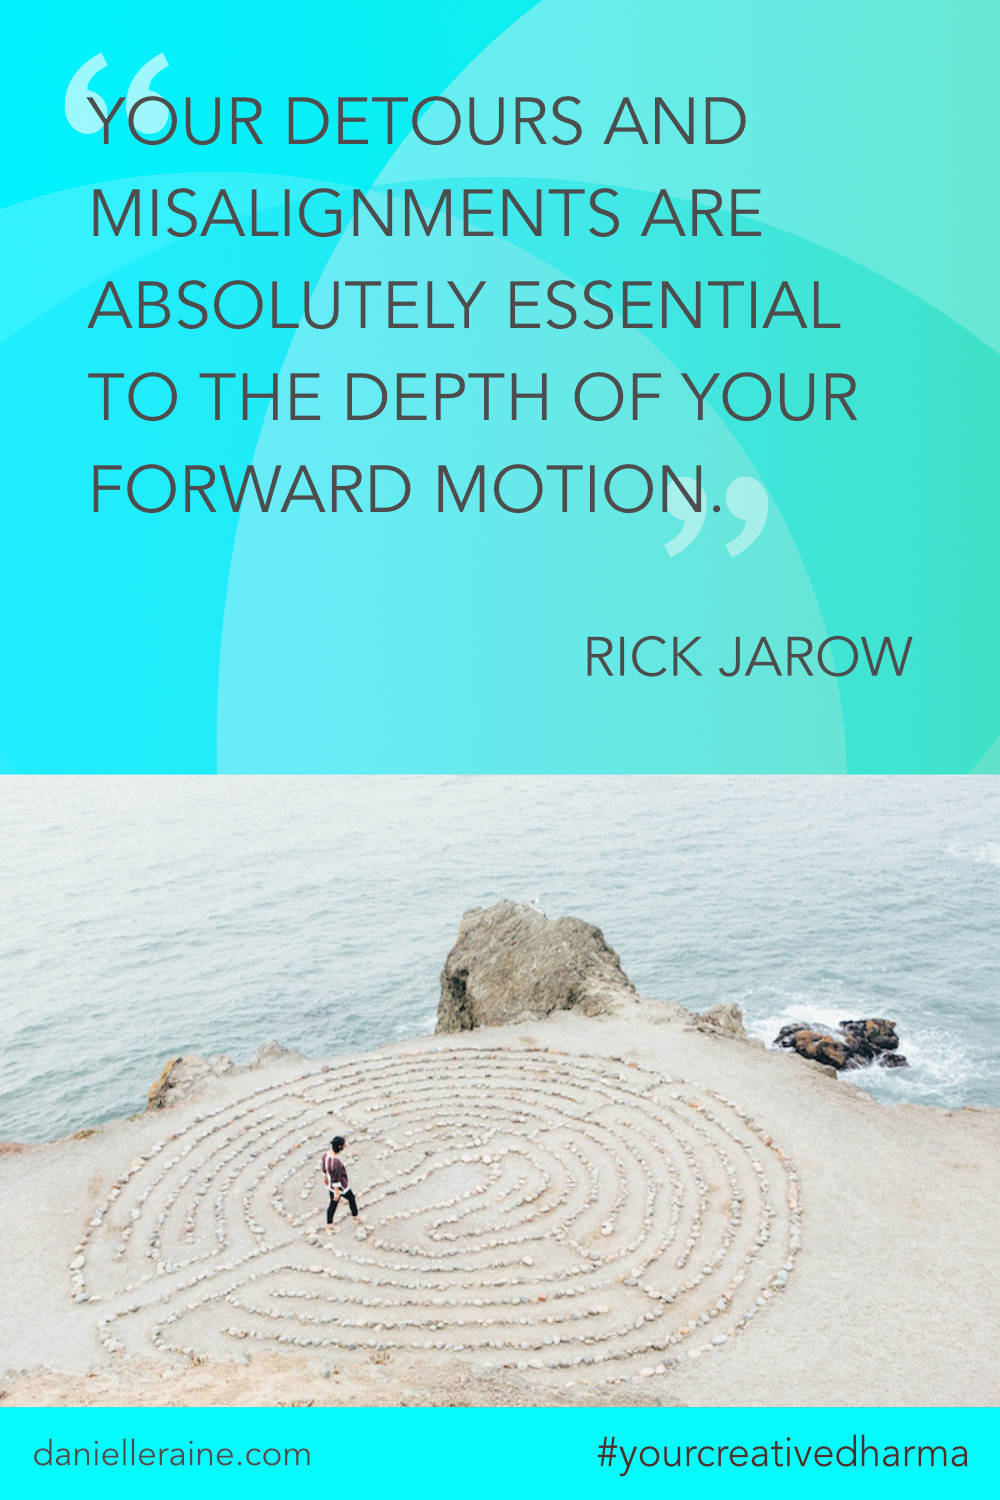 Your Creative Dharma quote rick jarow detours